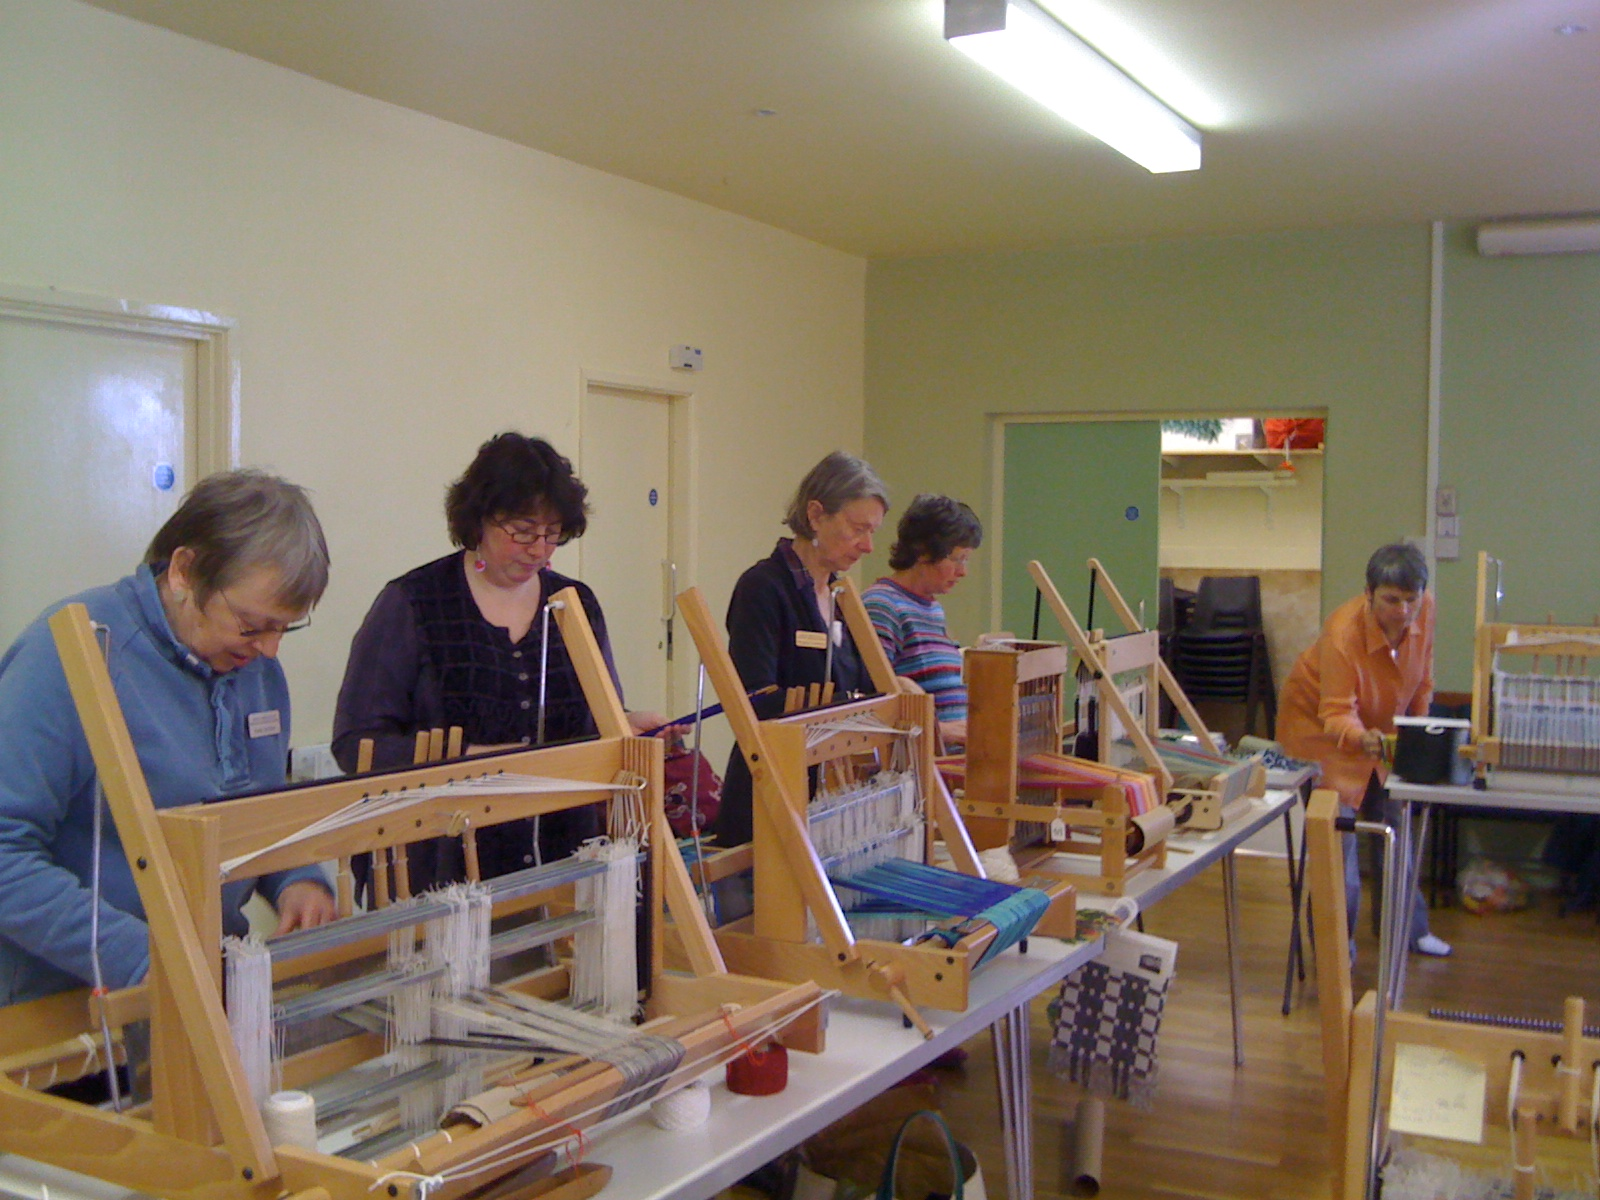 Doubleweave workshop